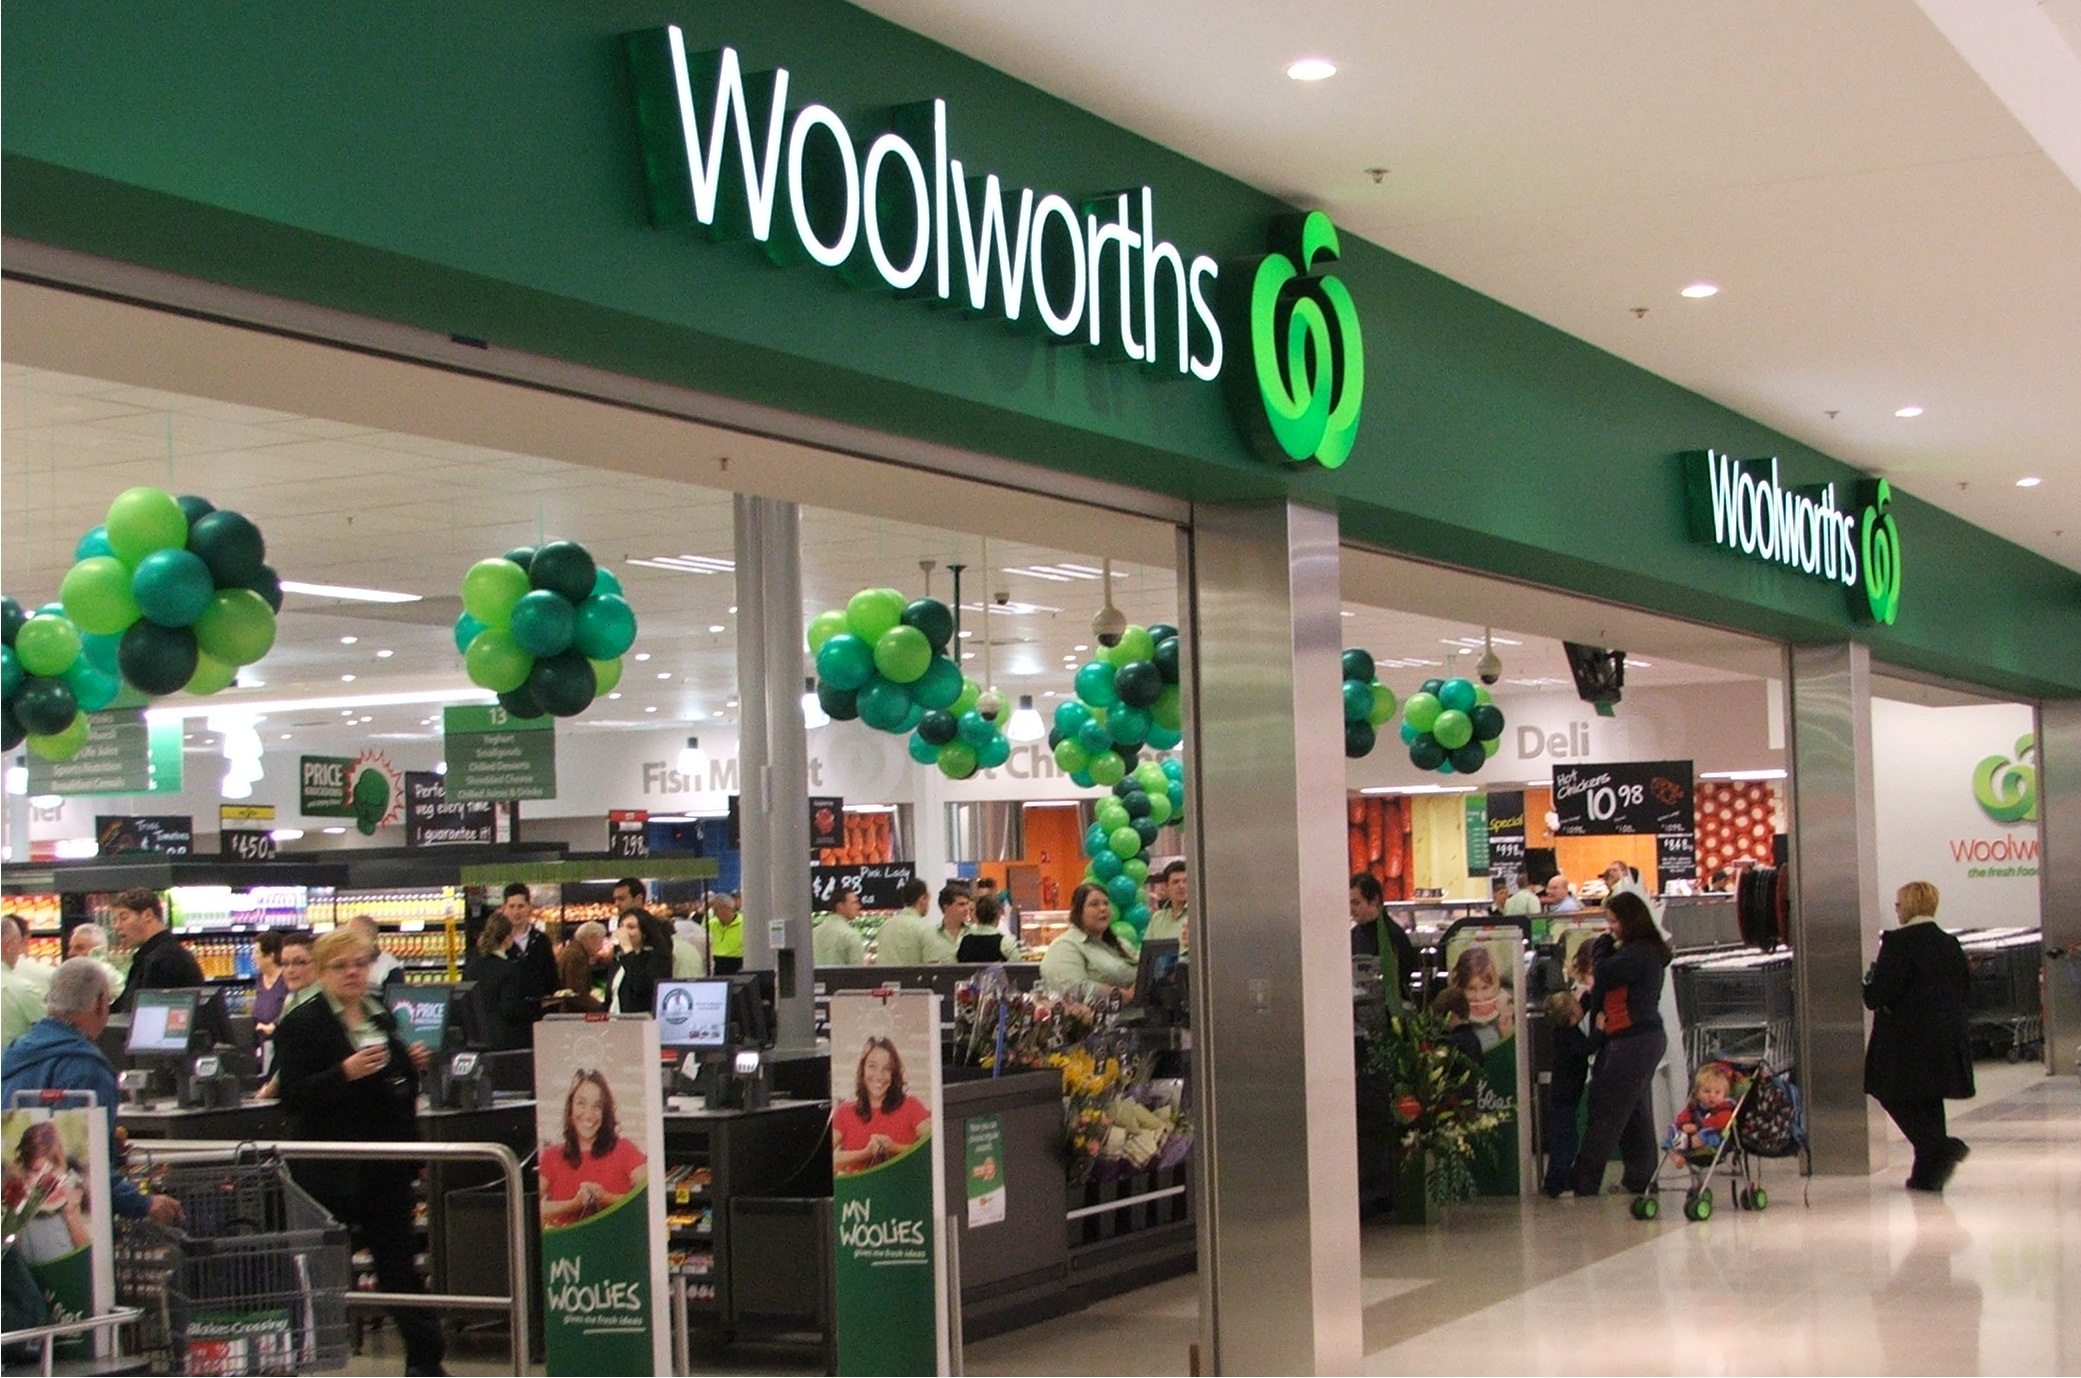 Woolworths in Australia